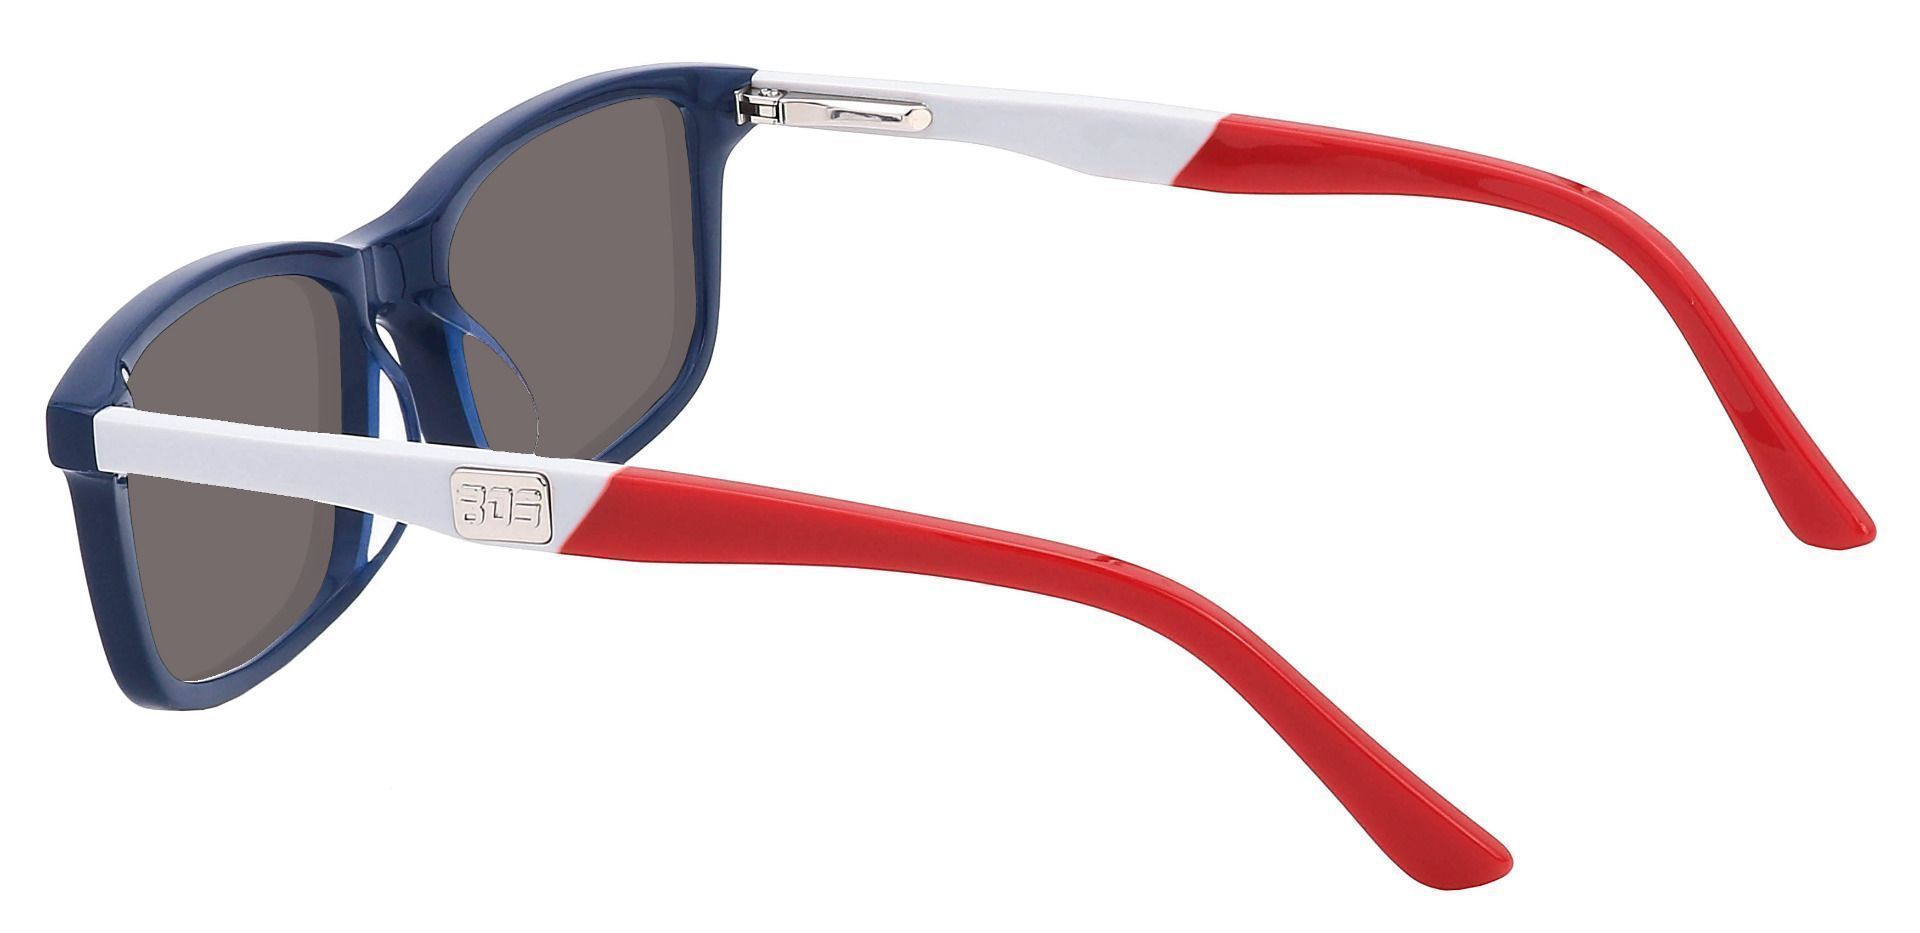 Titletown Rectangle Non-Rx Sunglasses - Blue Frame With Gray Lenses